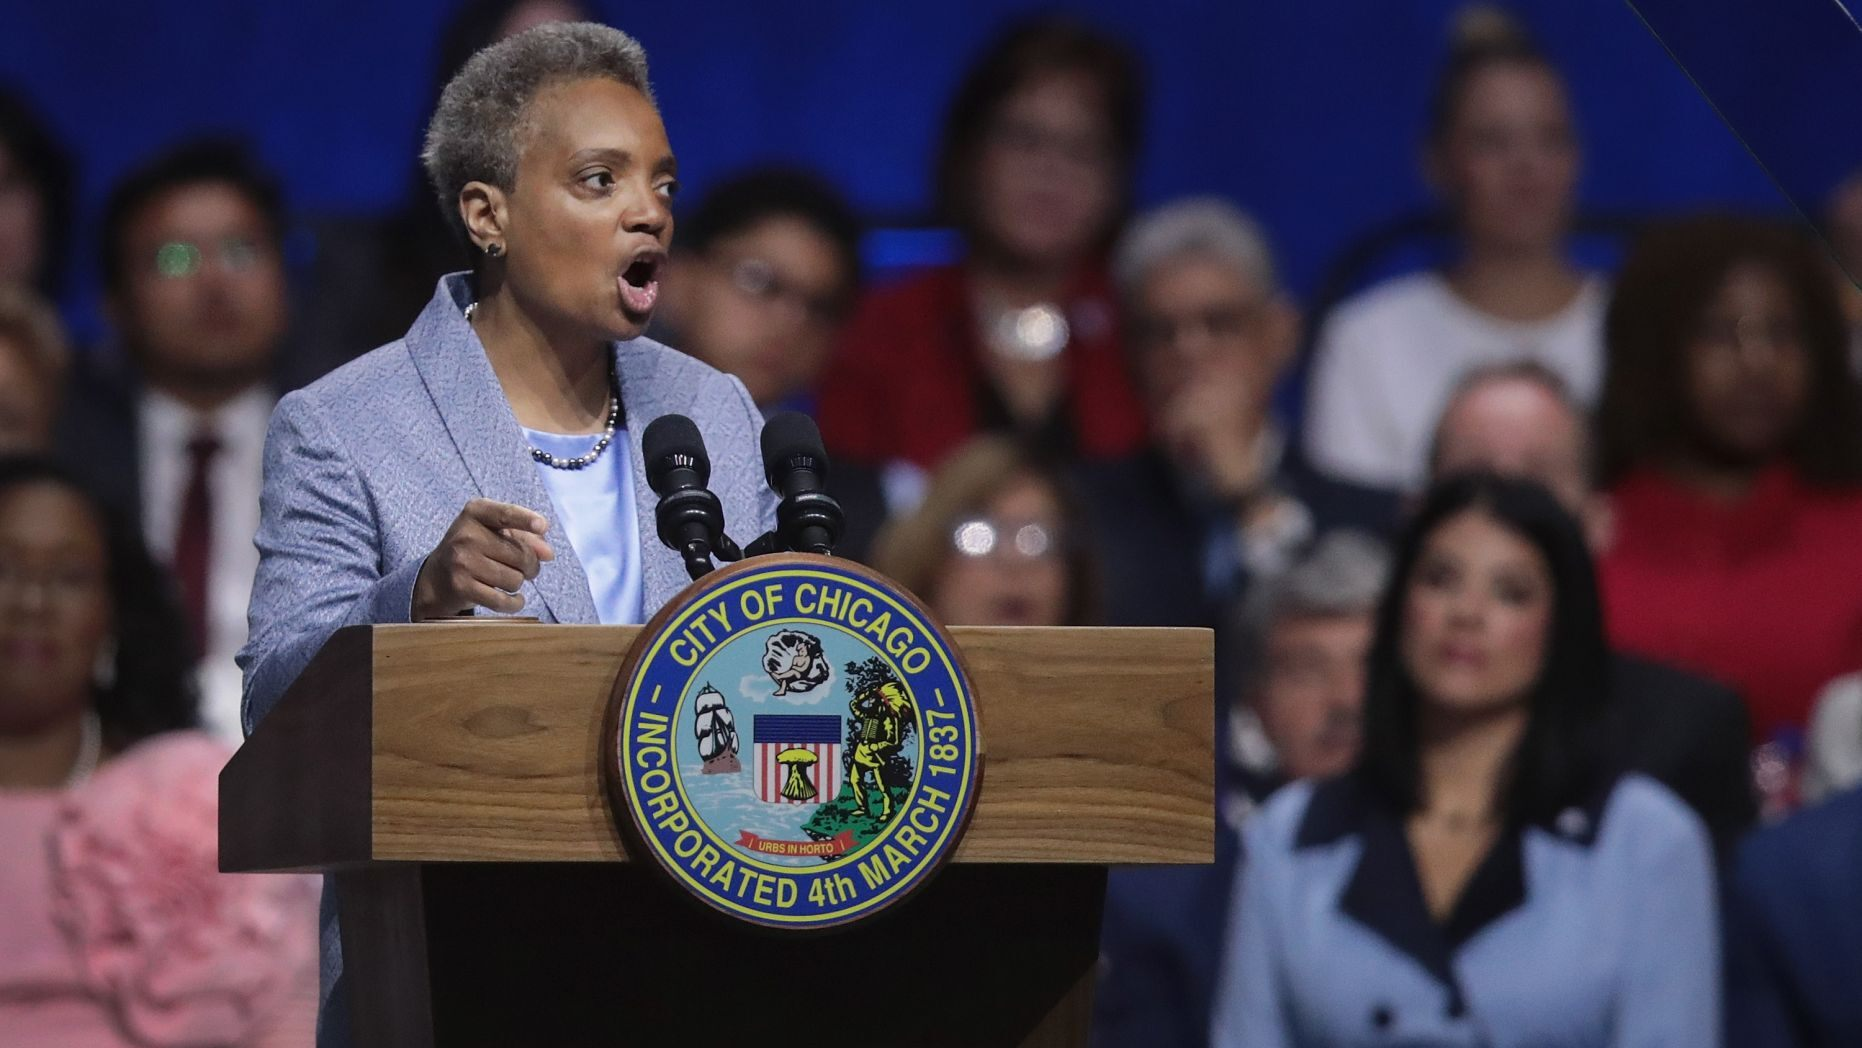 CHICAGO, ILLINOIS - MAY 20: Lori Lightfoot addresses guests after being sworn in as Mayor of Chicago during a ceremony at the Wintrust Arena on May 20, 2019 in Chicago, Illinois. Lightfoot become the first black female and openly gay Mayor in the city's history.